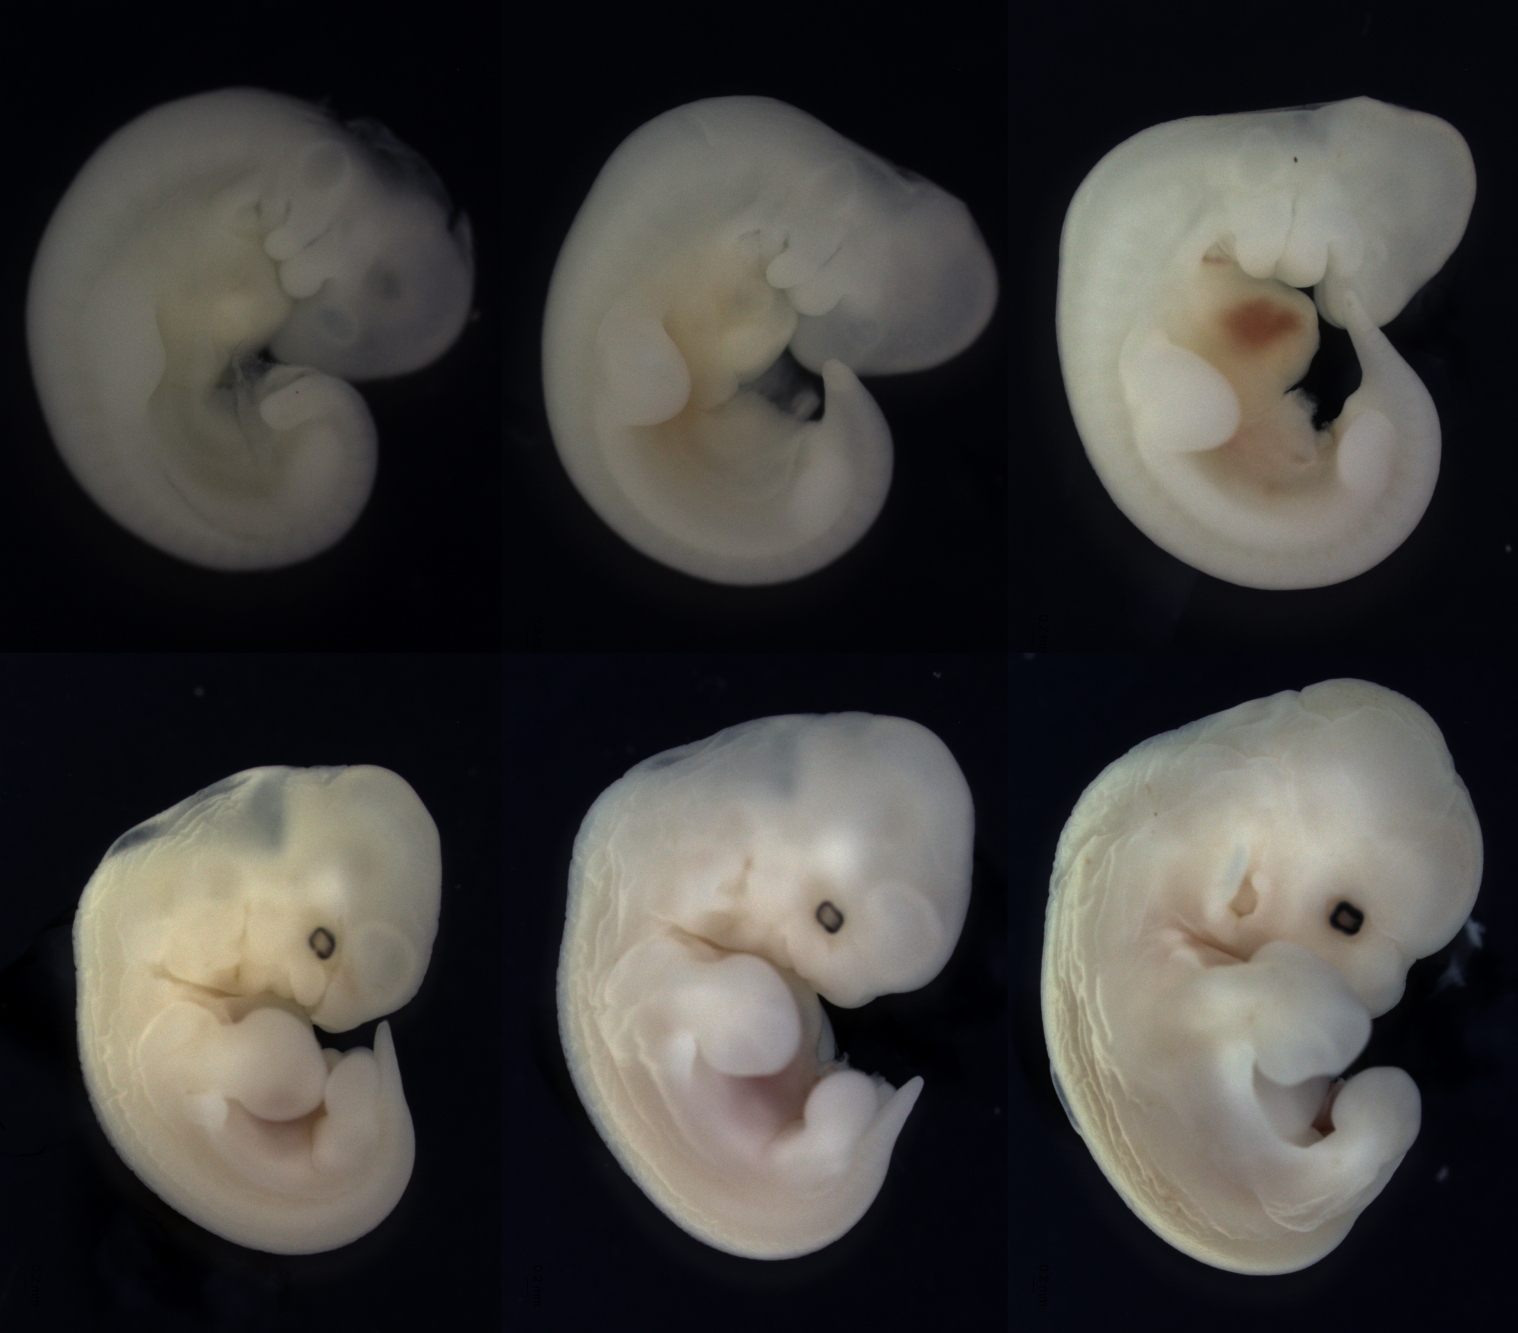 Erophylla sezekorni (Buffy flower bat) embryos from ridge, bud, paddle stages (top row). As development proceeds (bottom row), the digits condense in the developing fore- and hindlimbs. The interdigital tissue of the hindlimb will regress, leaving free toes, while the wing will retain this tissue.